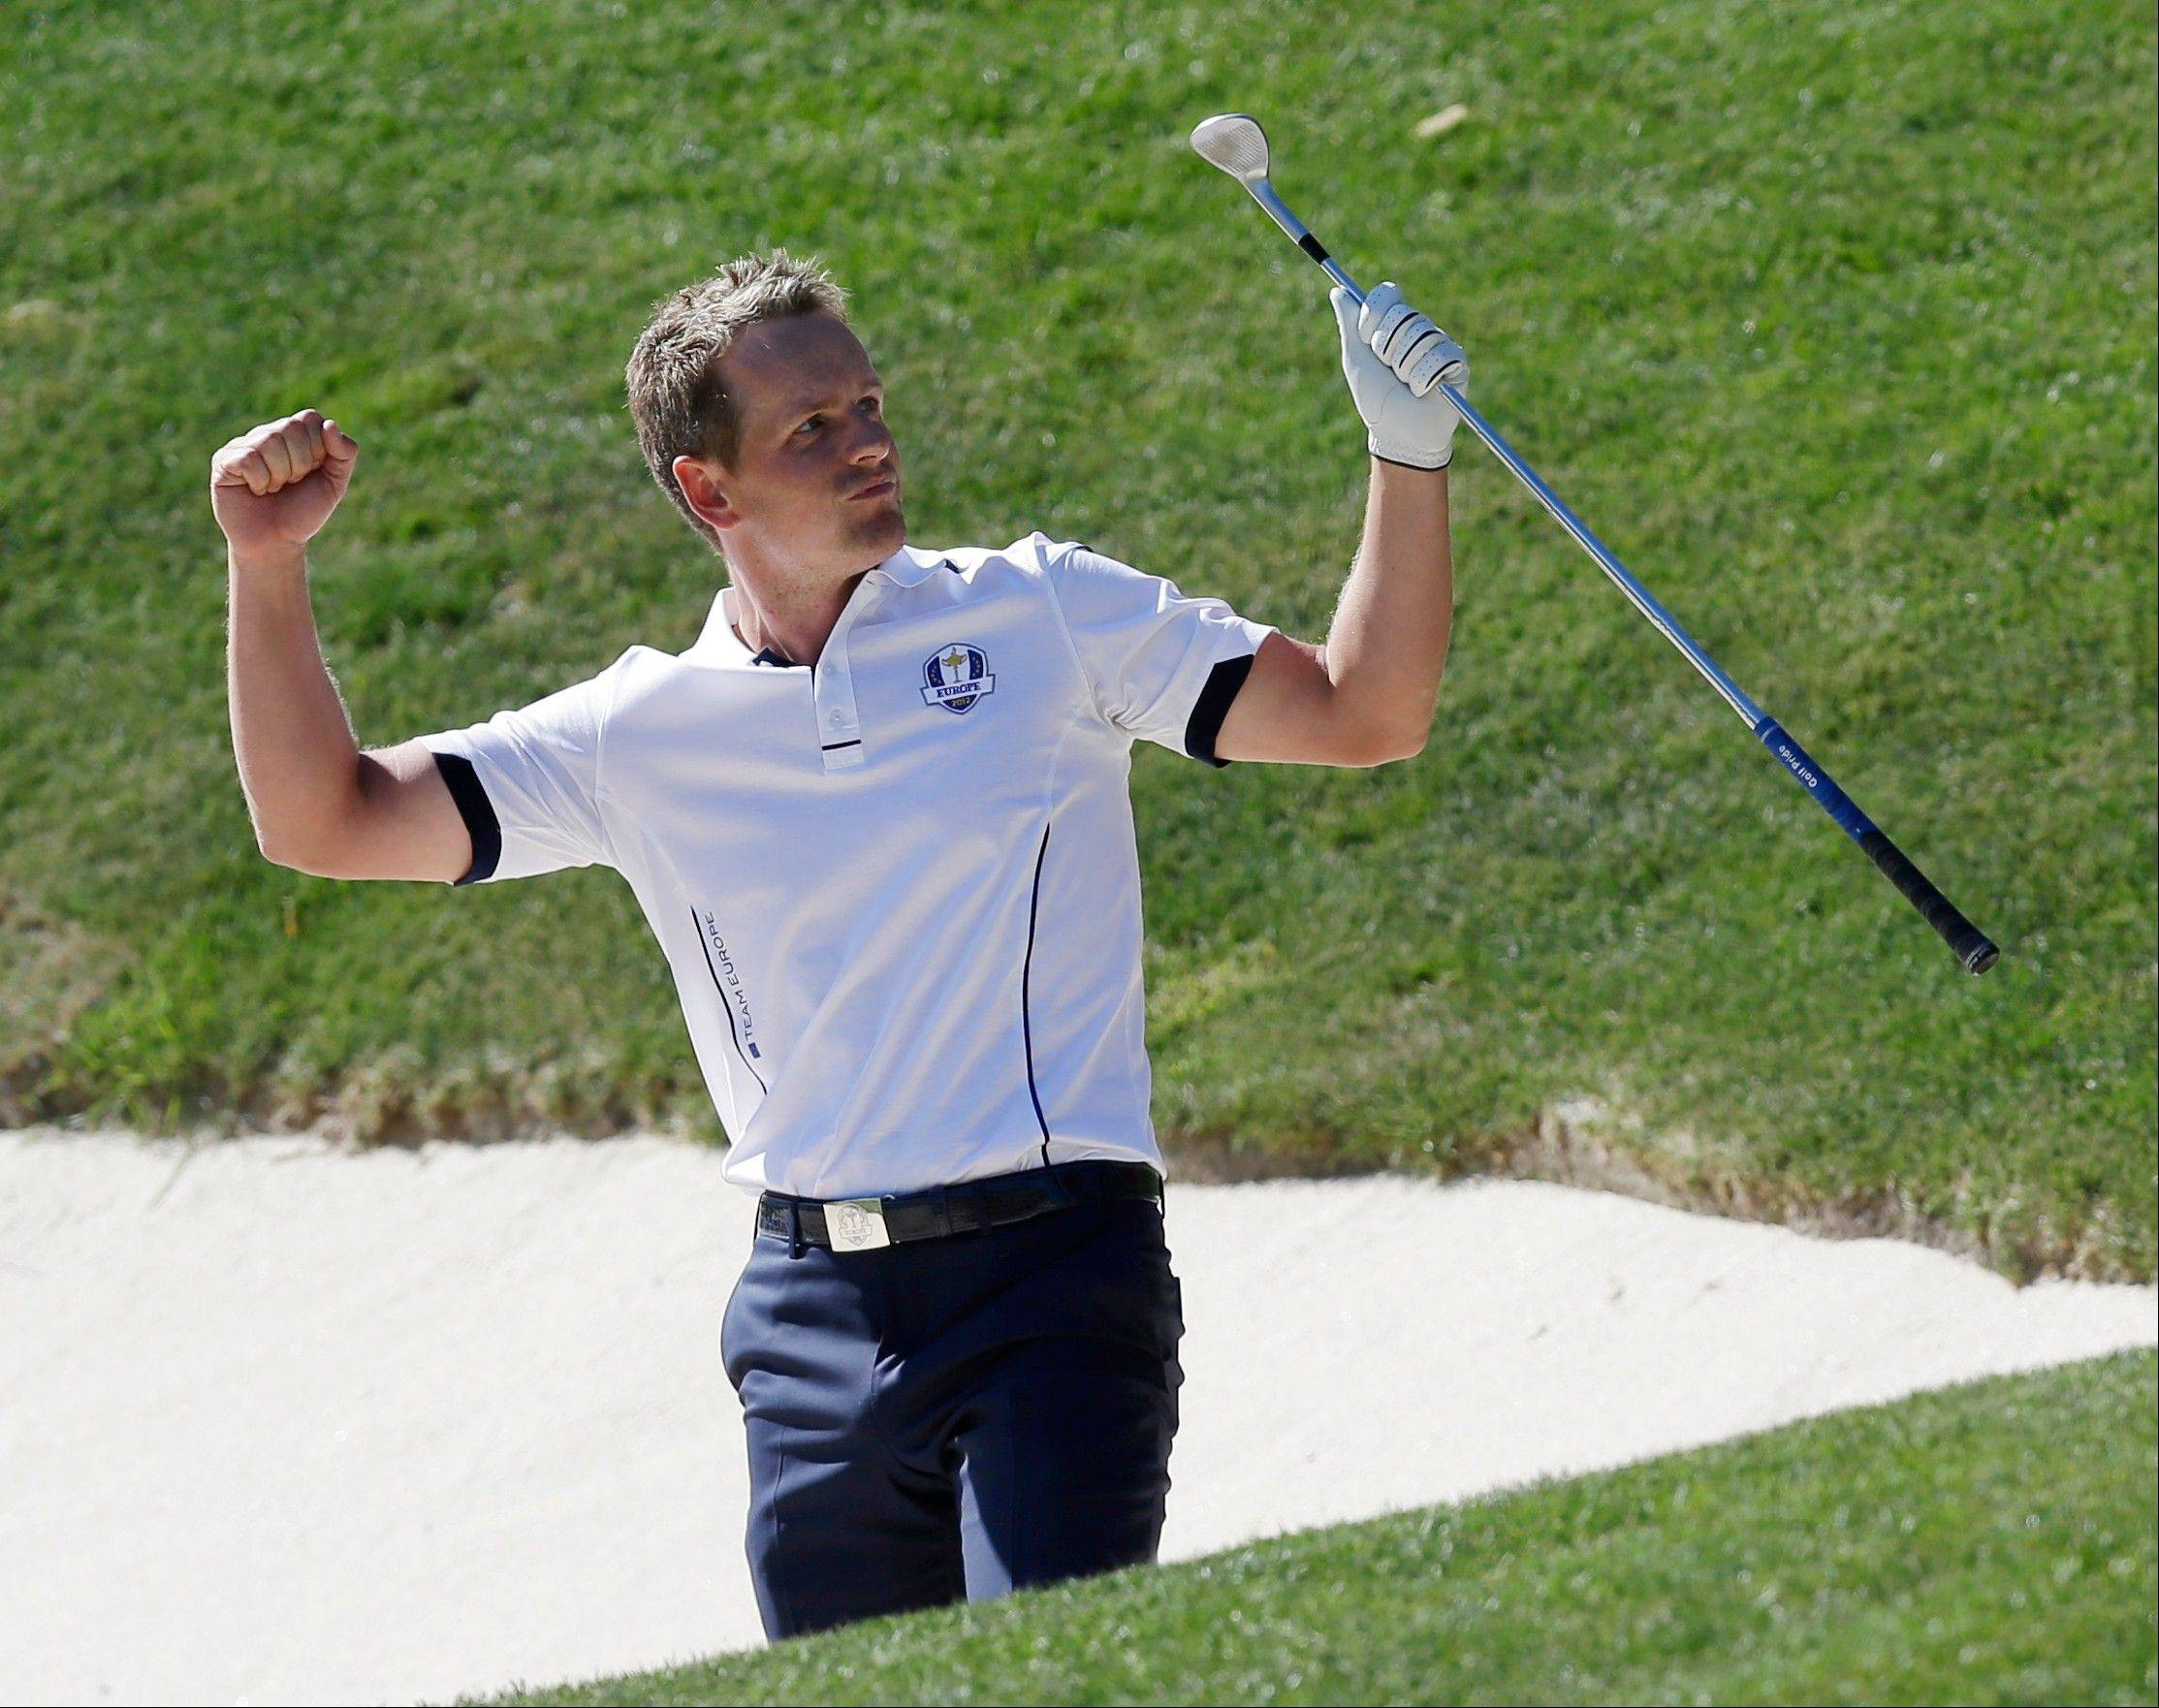 Europe's Luke Donald reacts after hitting out of a bunker on the 17th hole at Medinah Country Club Sunday. The hole gave Donald a win in the Ryder Cup match over USA's Bubba Watson.